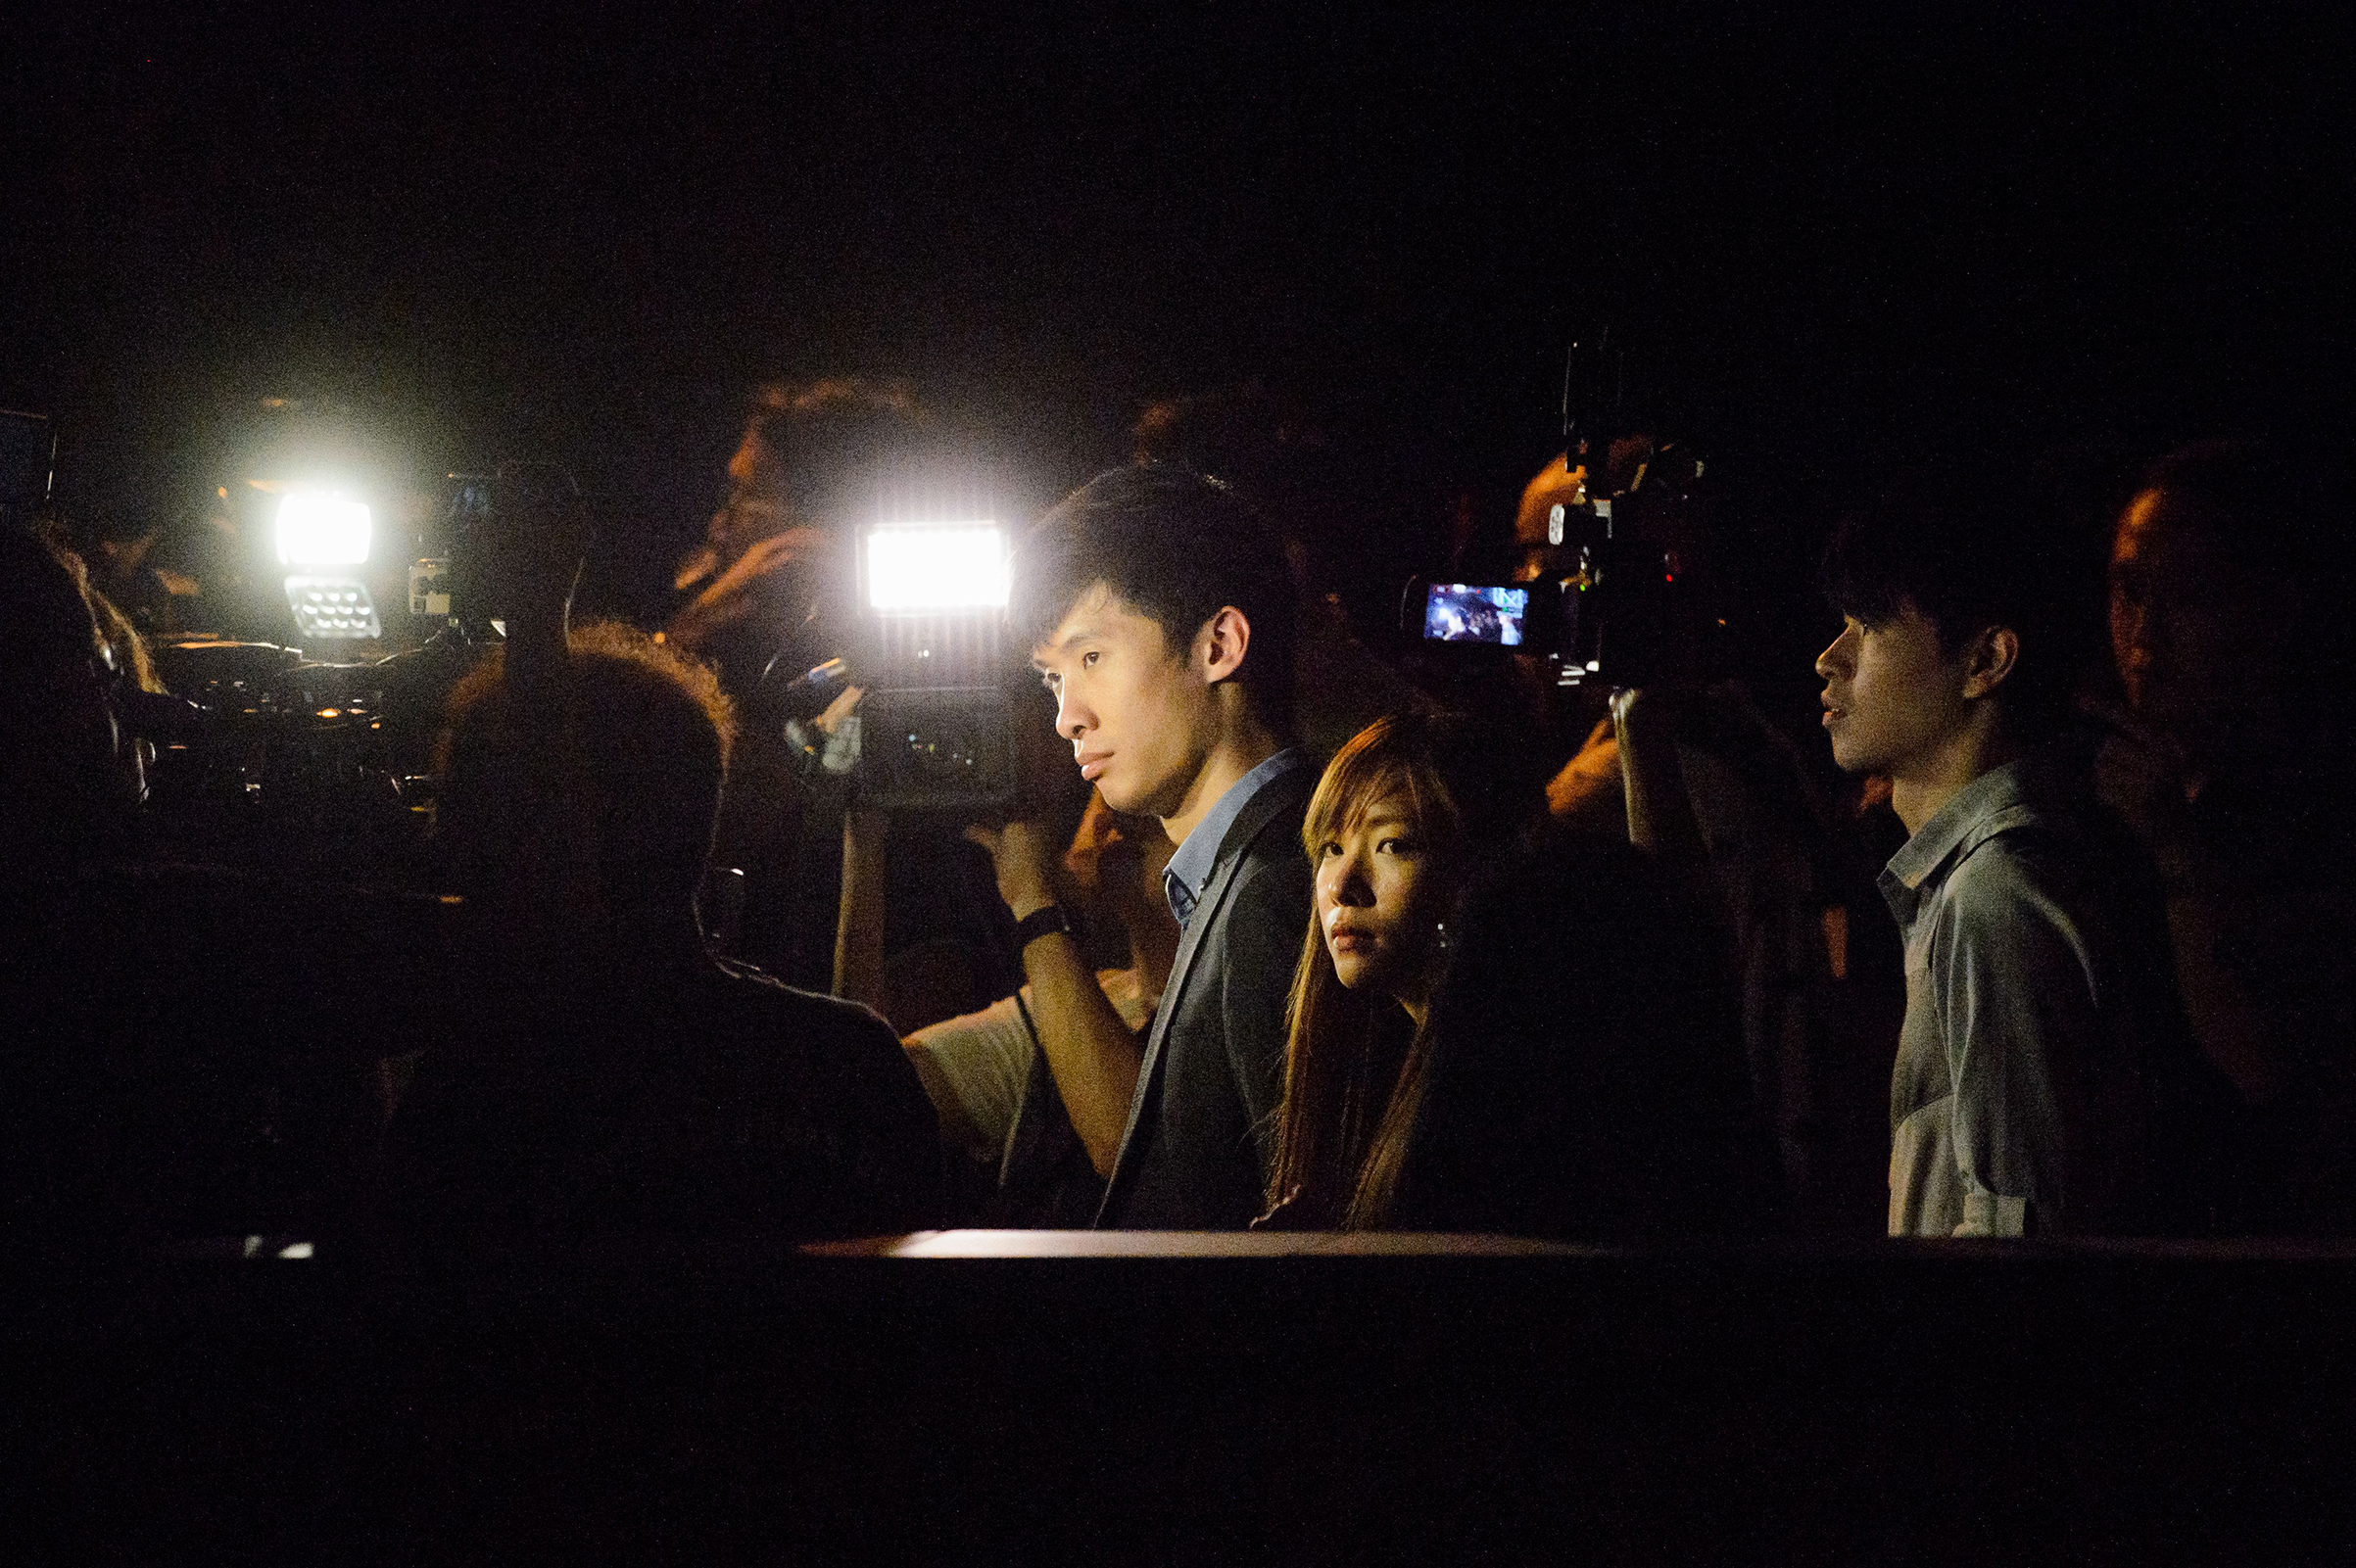 """Baggio Leung (center left) and Yau Wai-ching (center right) are surrounded by media as they leave the High Court after a news conference in Hong Kong on Nov. 15, 2016. The two activists were elected to the territory's legislature on an unprecedented pro-independence platform but were prevented from taking up their seats after they pledged allegiance to the """"Hong Kong nation"""" at their swearing-in ceremonies, instead of to China and the Hong Kong Special Administrative Region as defined under the territory's constitution."""